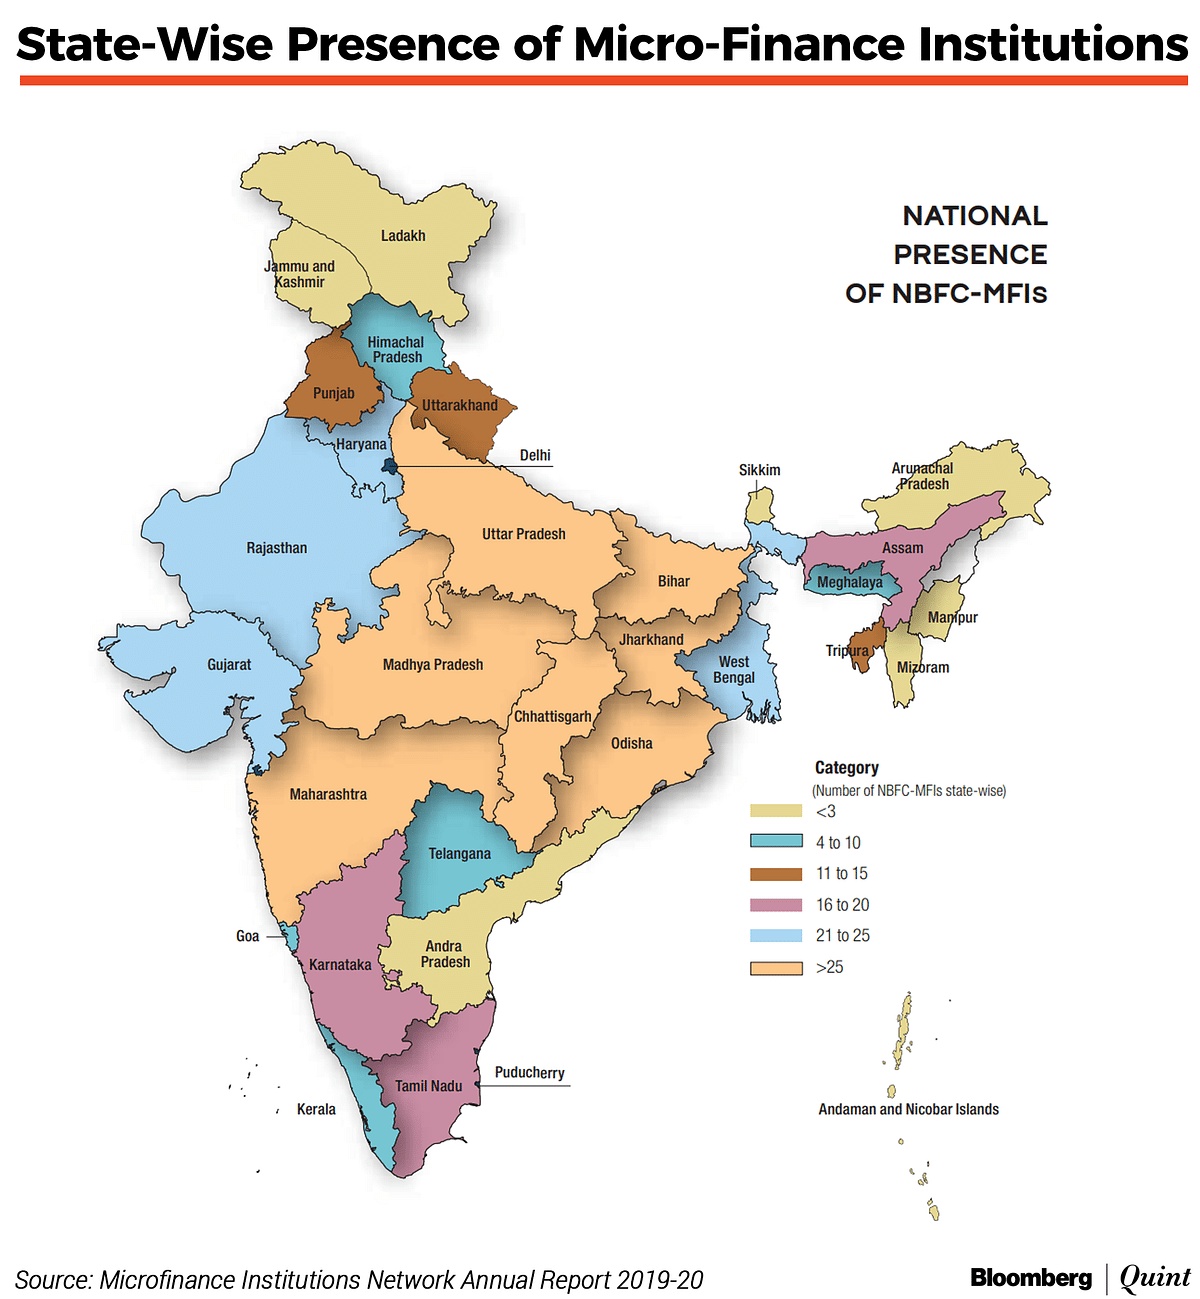 Source: Microfinance Institutions Network Annual Report 2019-20